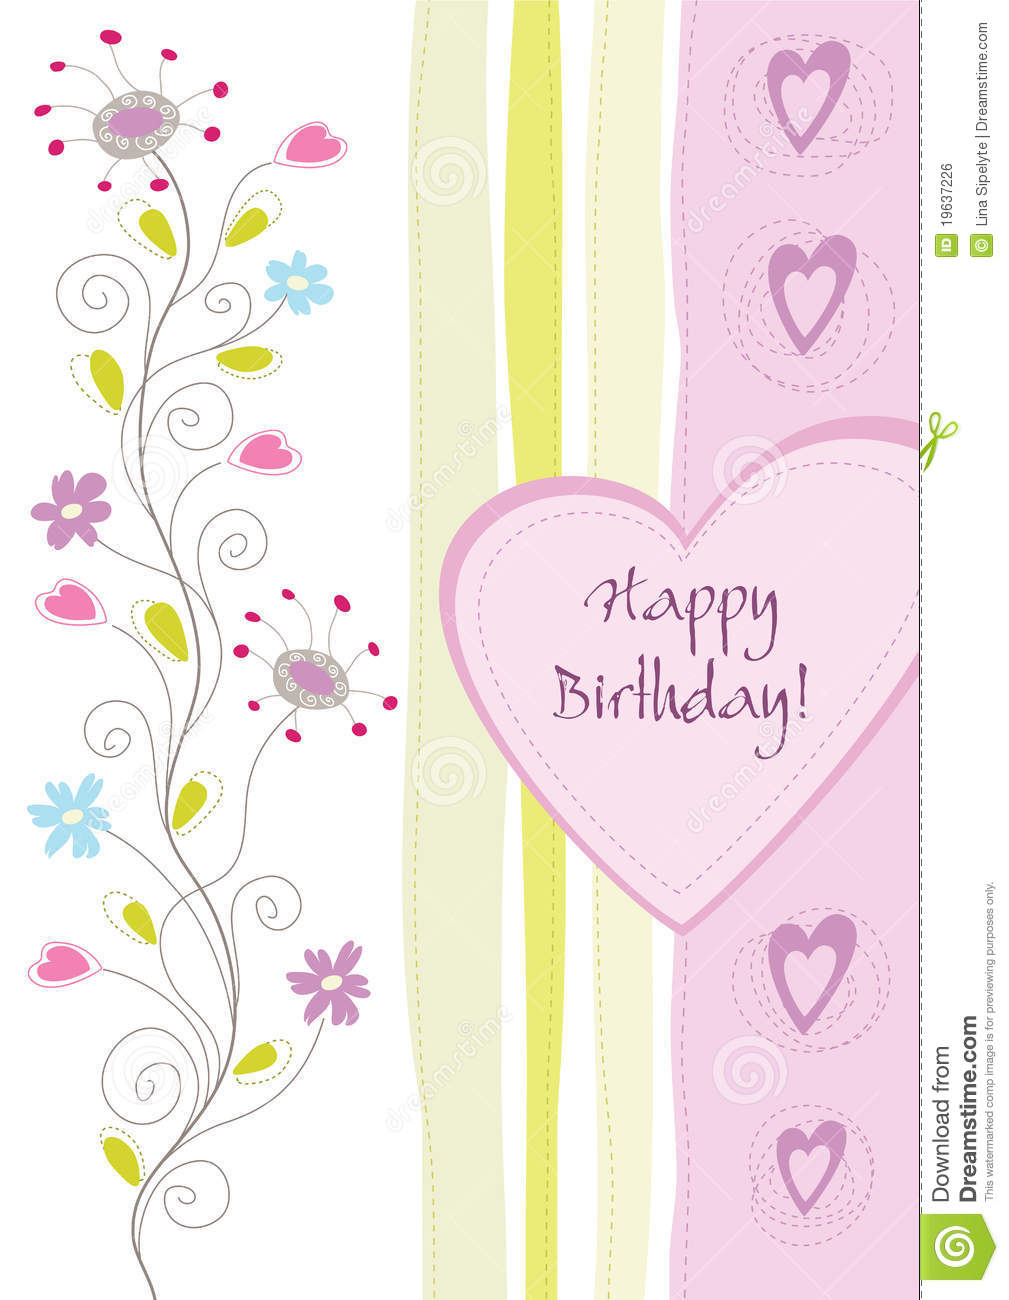 happy birthday floral greeting card royalty free stock image, Birthday card